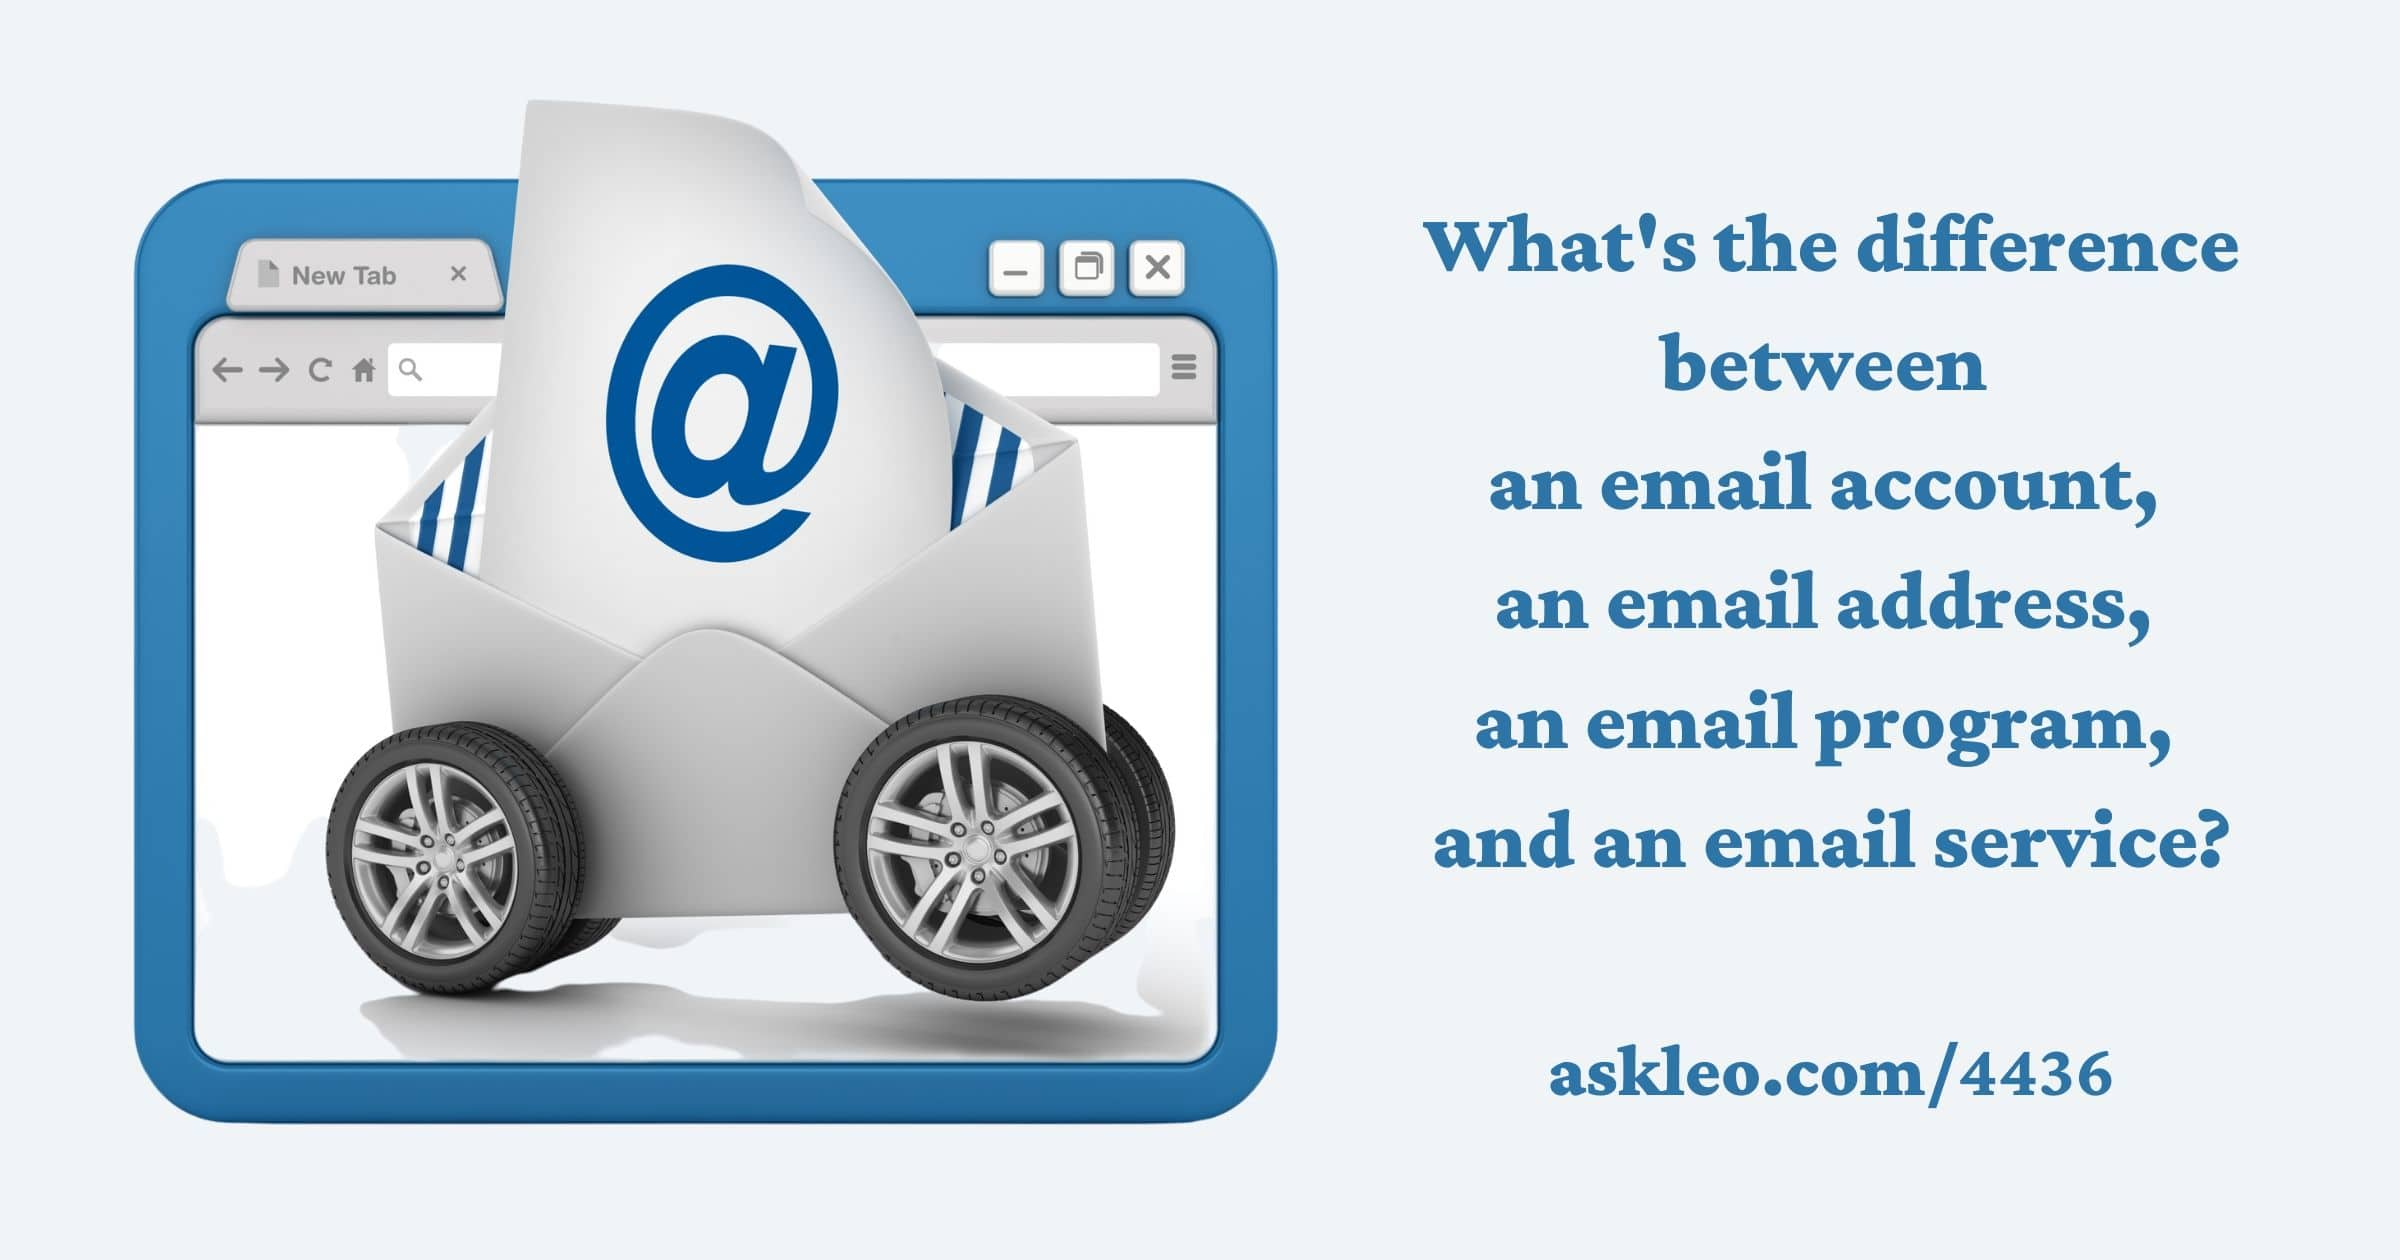 What's the Difference Between an Email Account, an Email Address, an Email Program, and an Email Service?